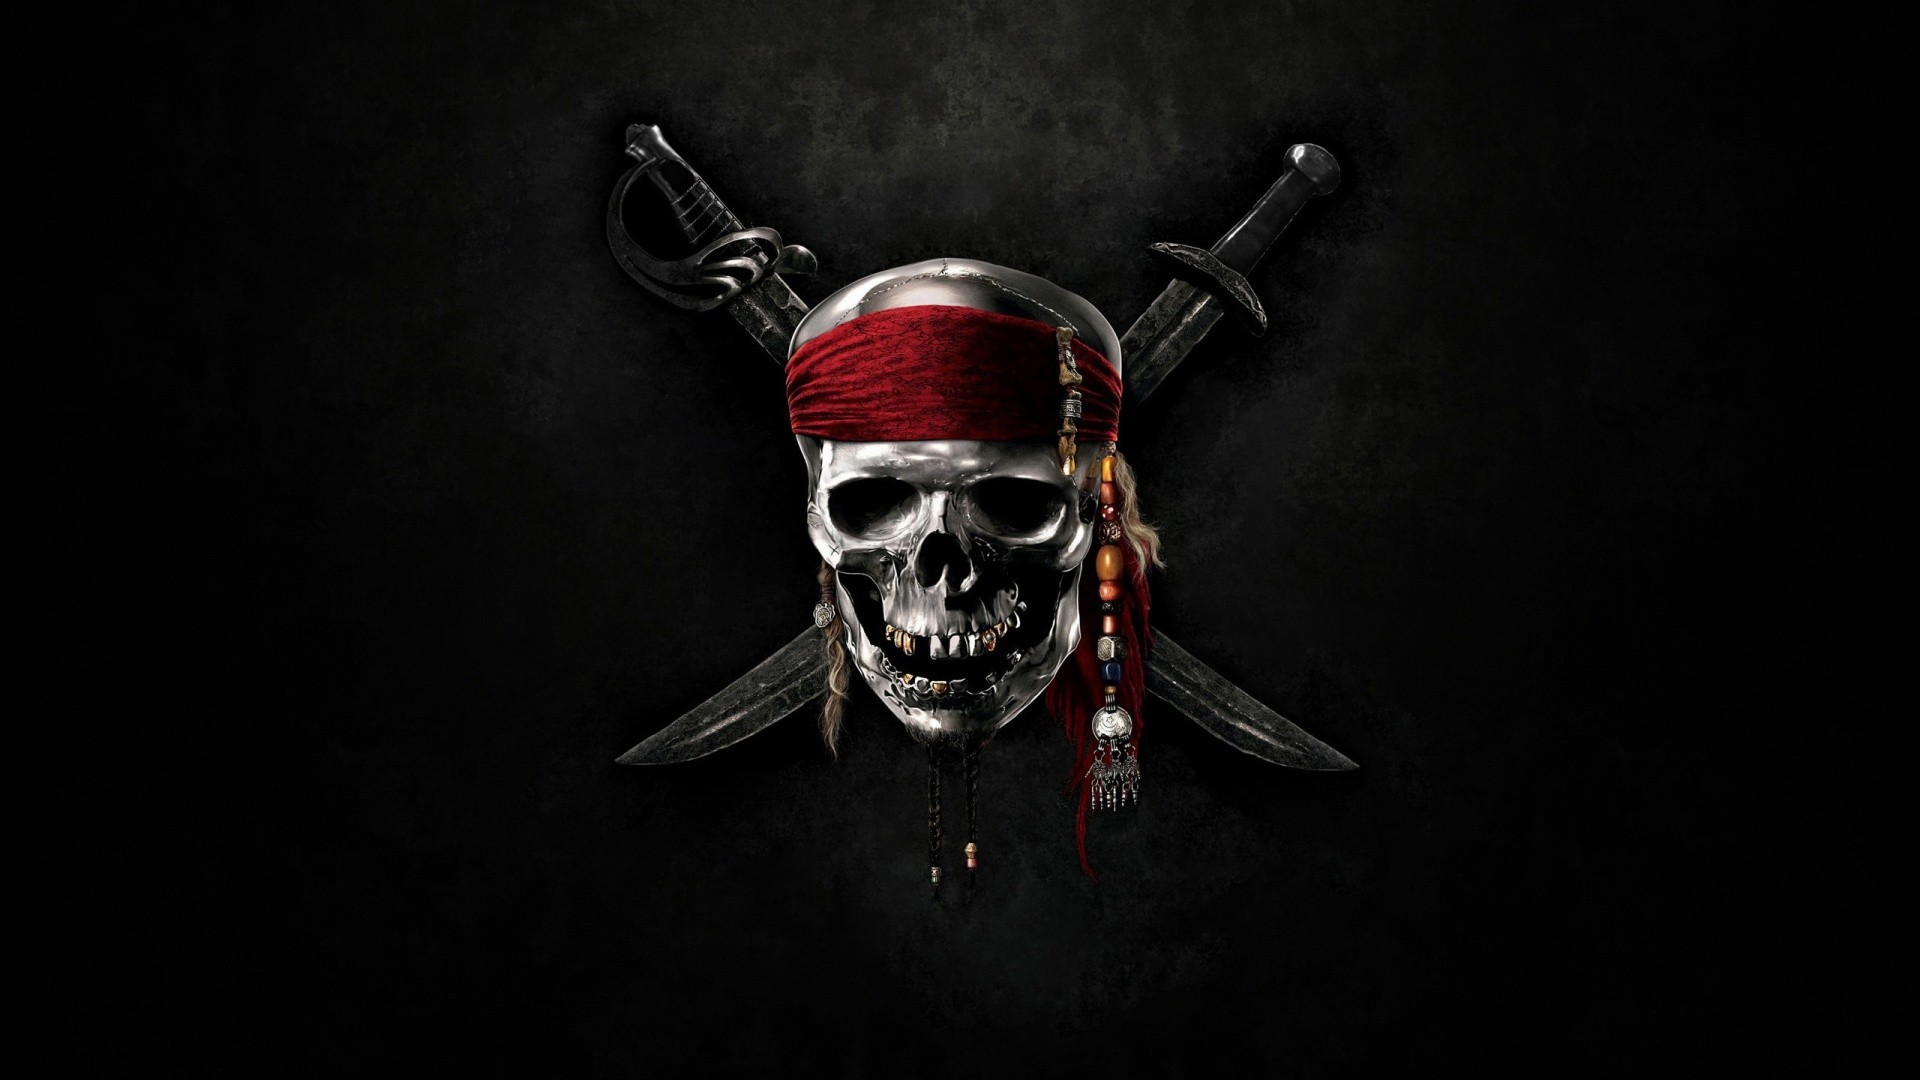 1920x1080 Skull And Crossbones wallpapers (32 Wallpapers)